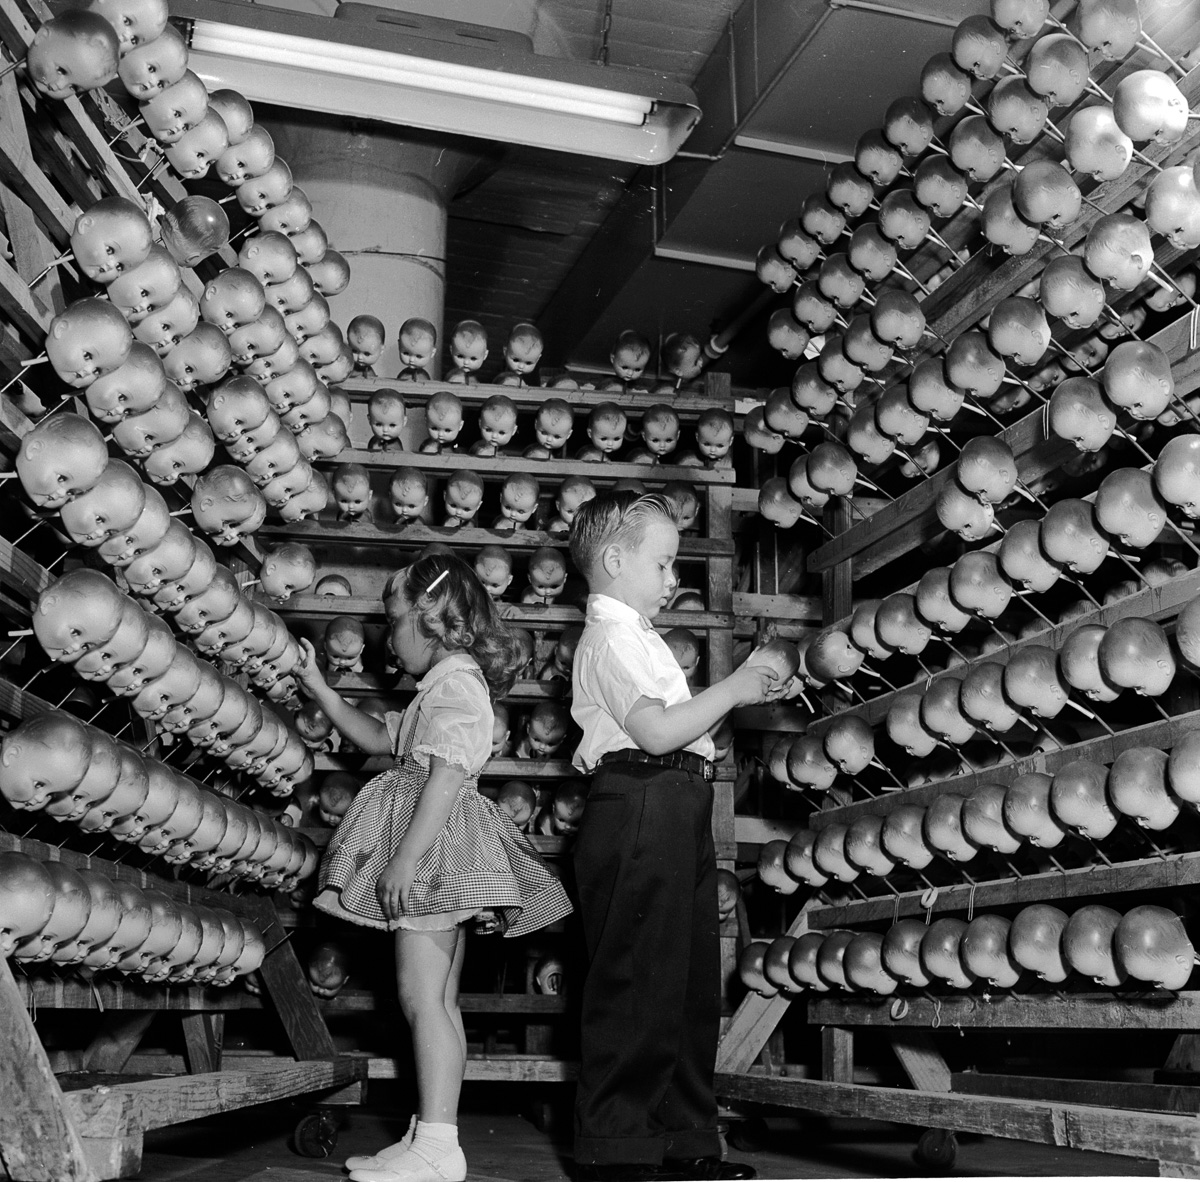 circa 1955:  A young boy and girl inspecting dolls' heads at the Ideal Toy Company in Jamaica, Long Island, USA. The company is one of the largest toy manufacturers in the world.  (Photo by Orlando /Three Lions/Getty Images)